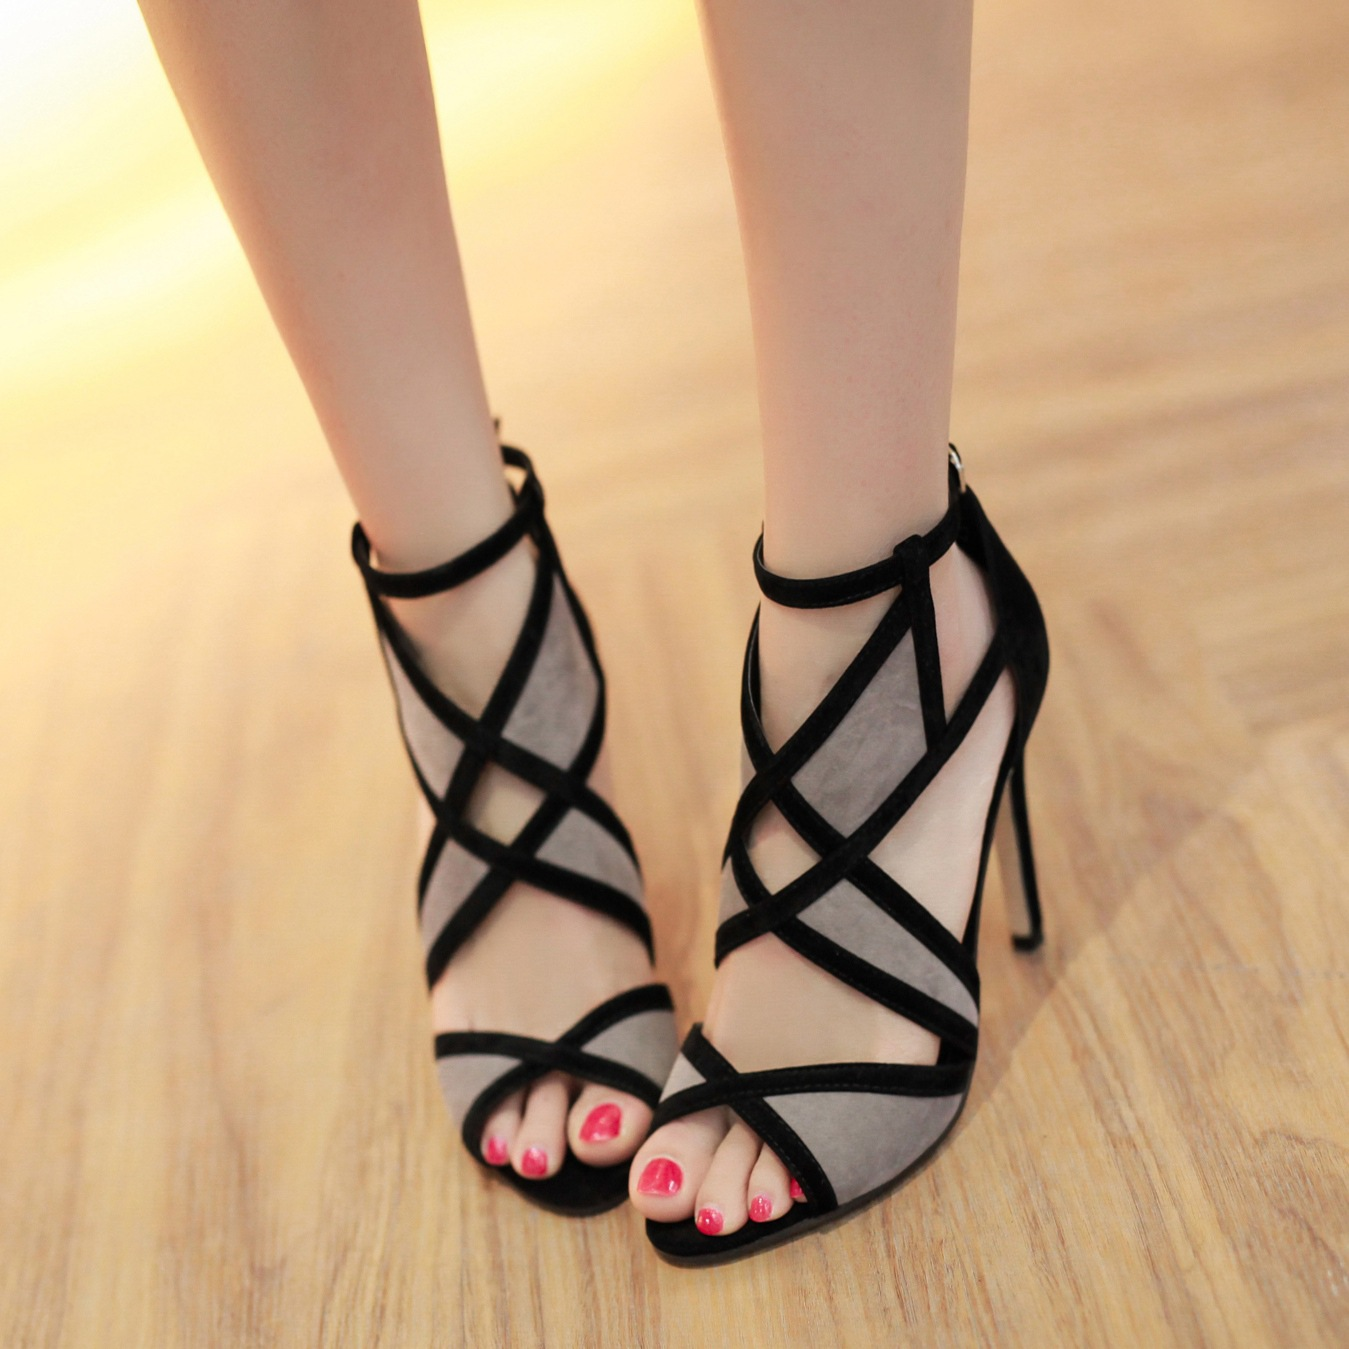 Korean Fishmouth Sandals Female Summer Sexy High-heel Coloured Baitao Cross-strap 2017 New Hollow-out Toe Fine-heelKorean Fishmouth Sandals Female Summer Sexy High-heel Coloured Baitao Cross-strap 2017 New Hollow-out Toe Fine-heel